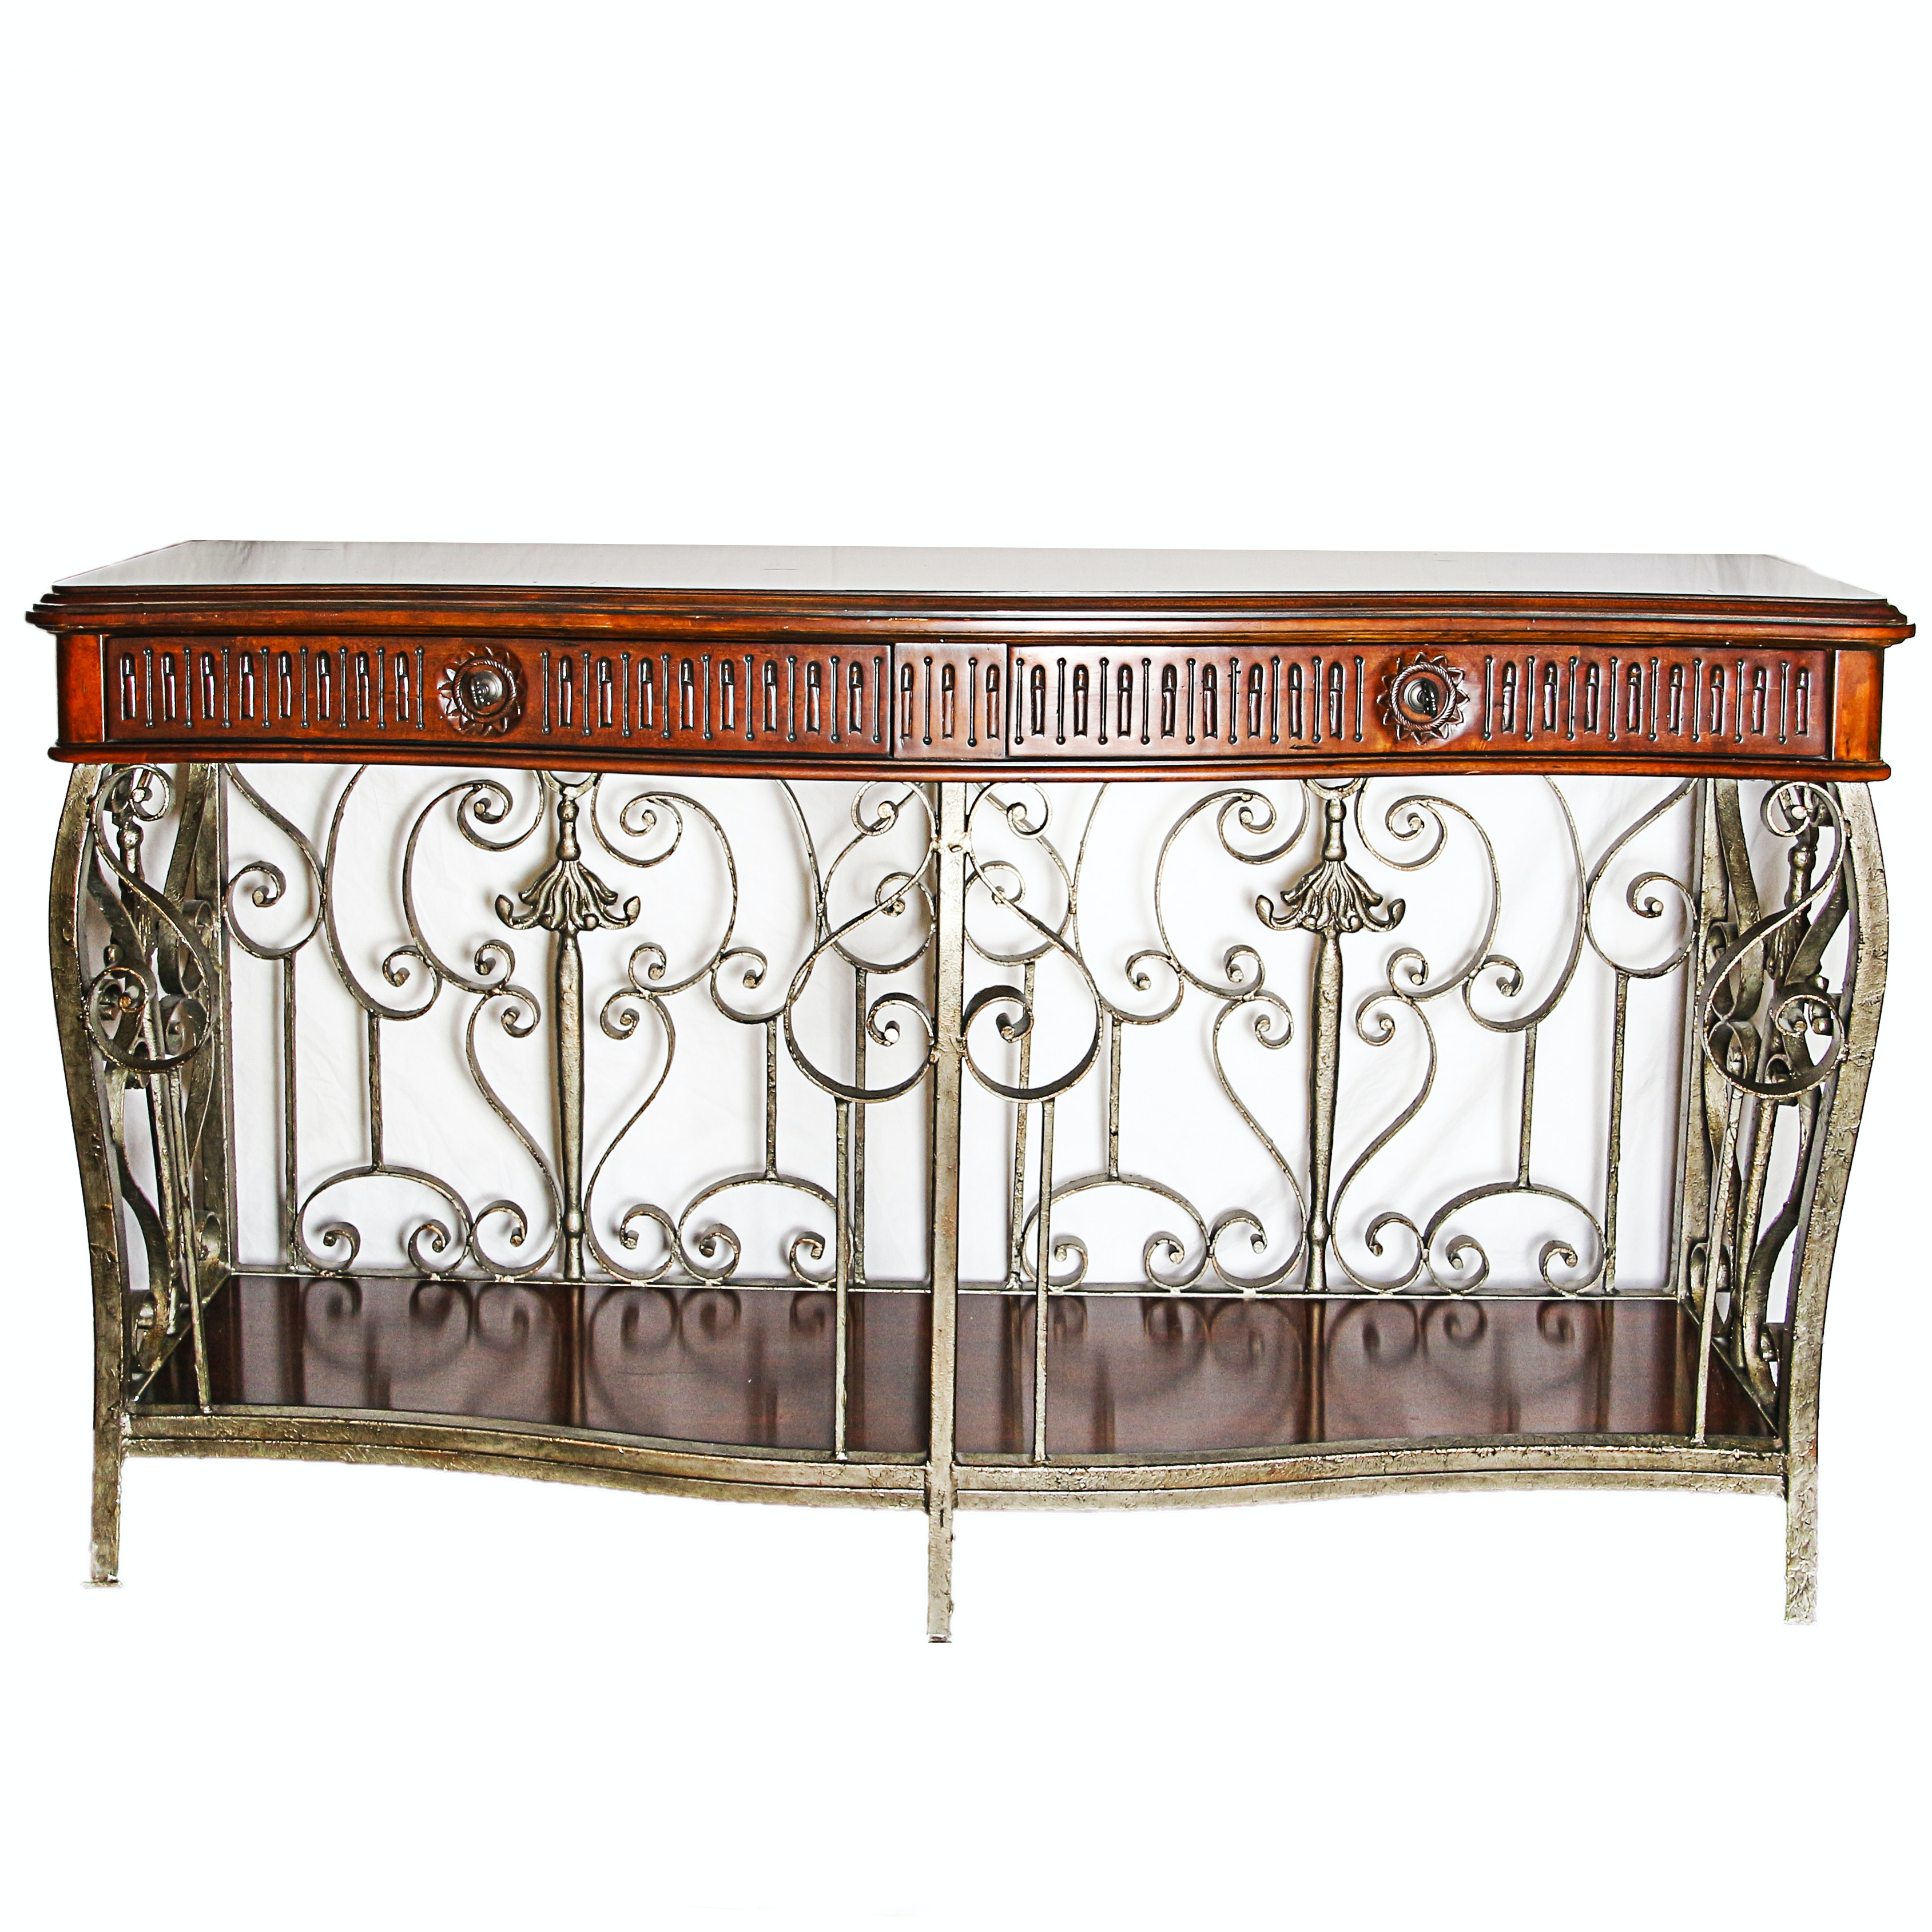 Neoclassical Style, Walnut and Wrought Iron Console Table